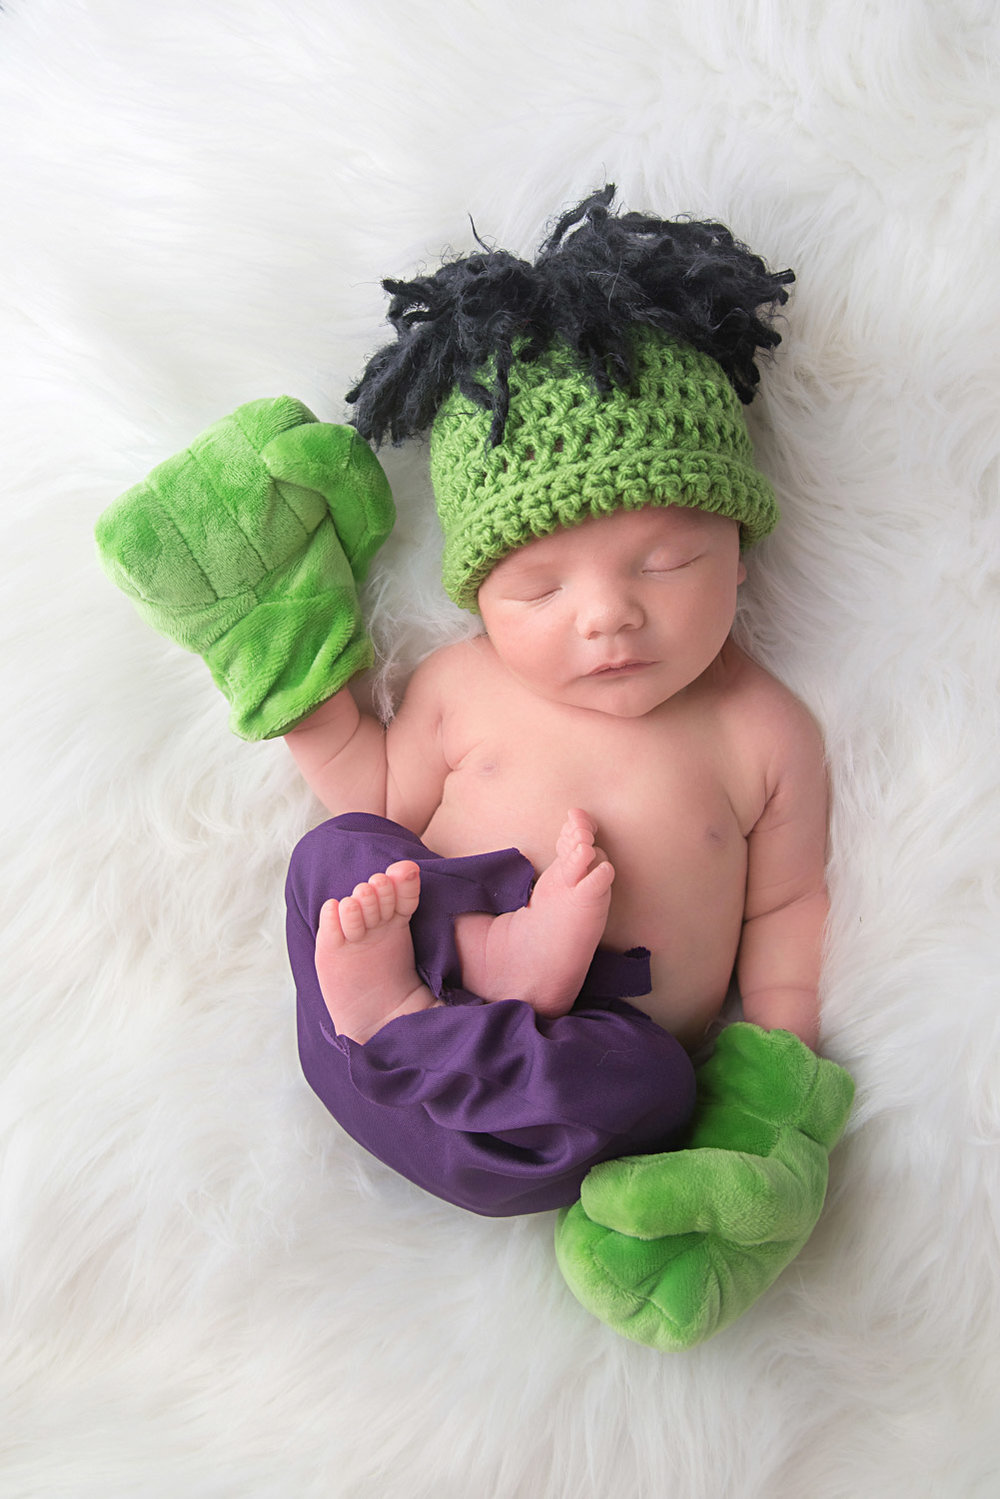 st-louis-newborn-photographer-baby-boy-in-huld-outfit.jpg